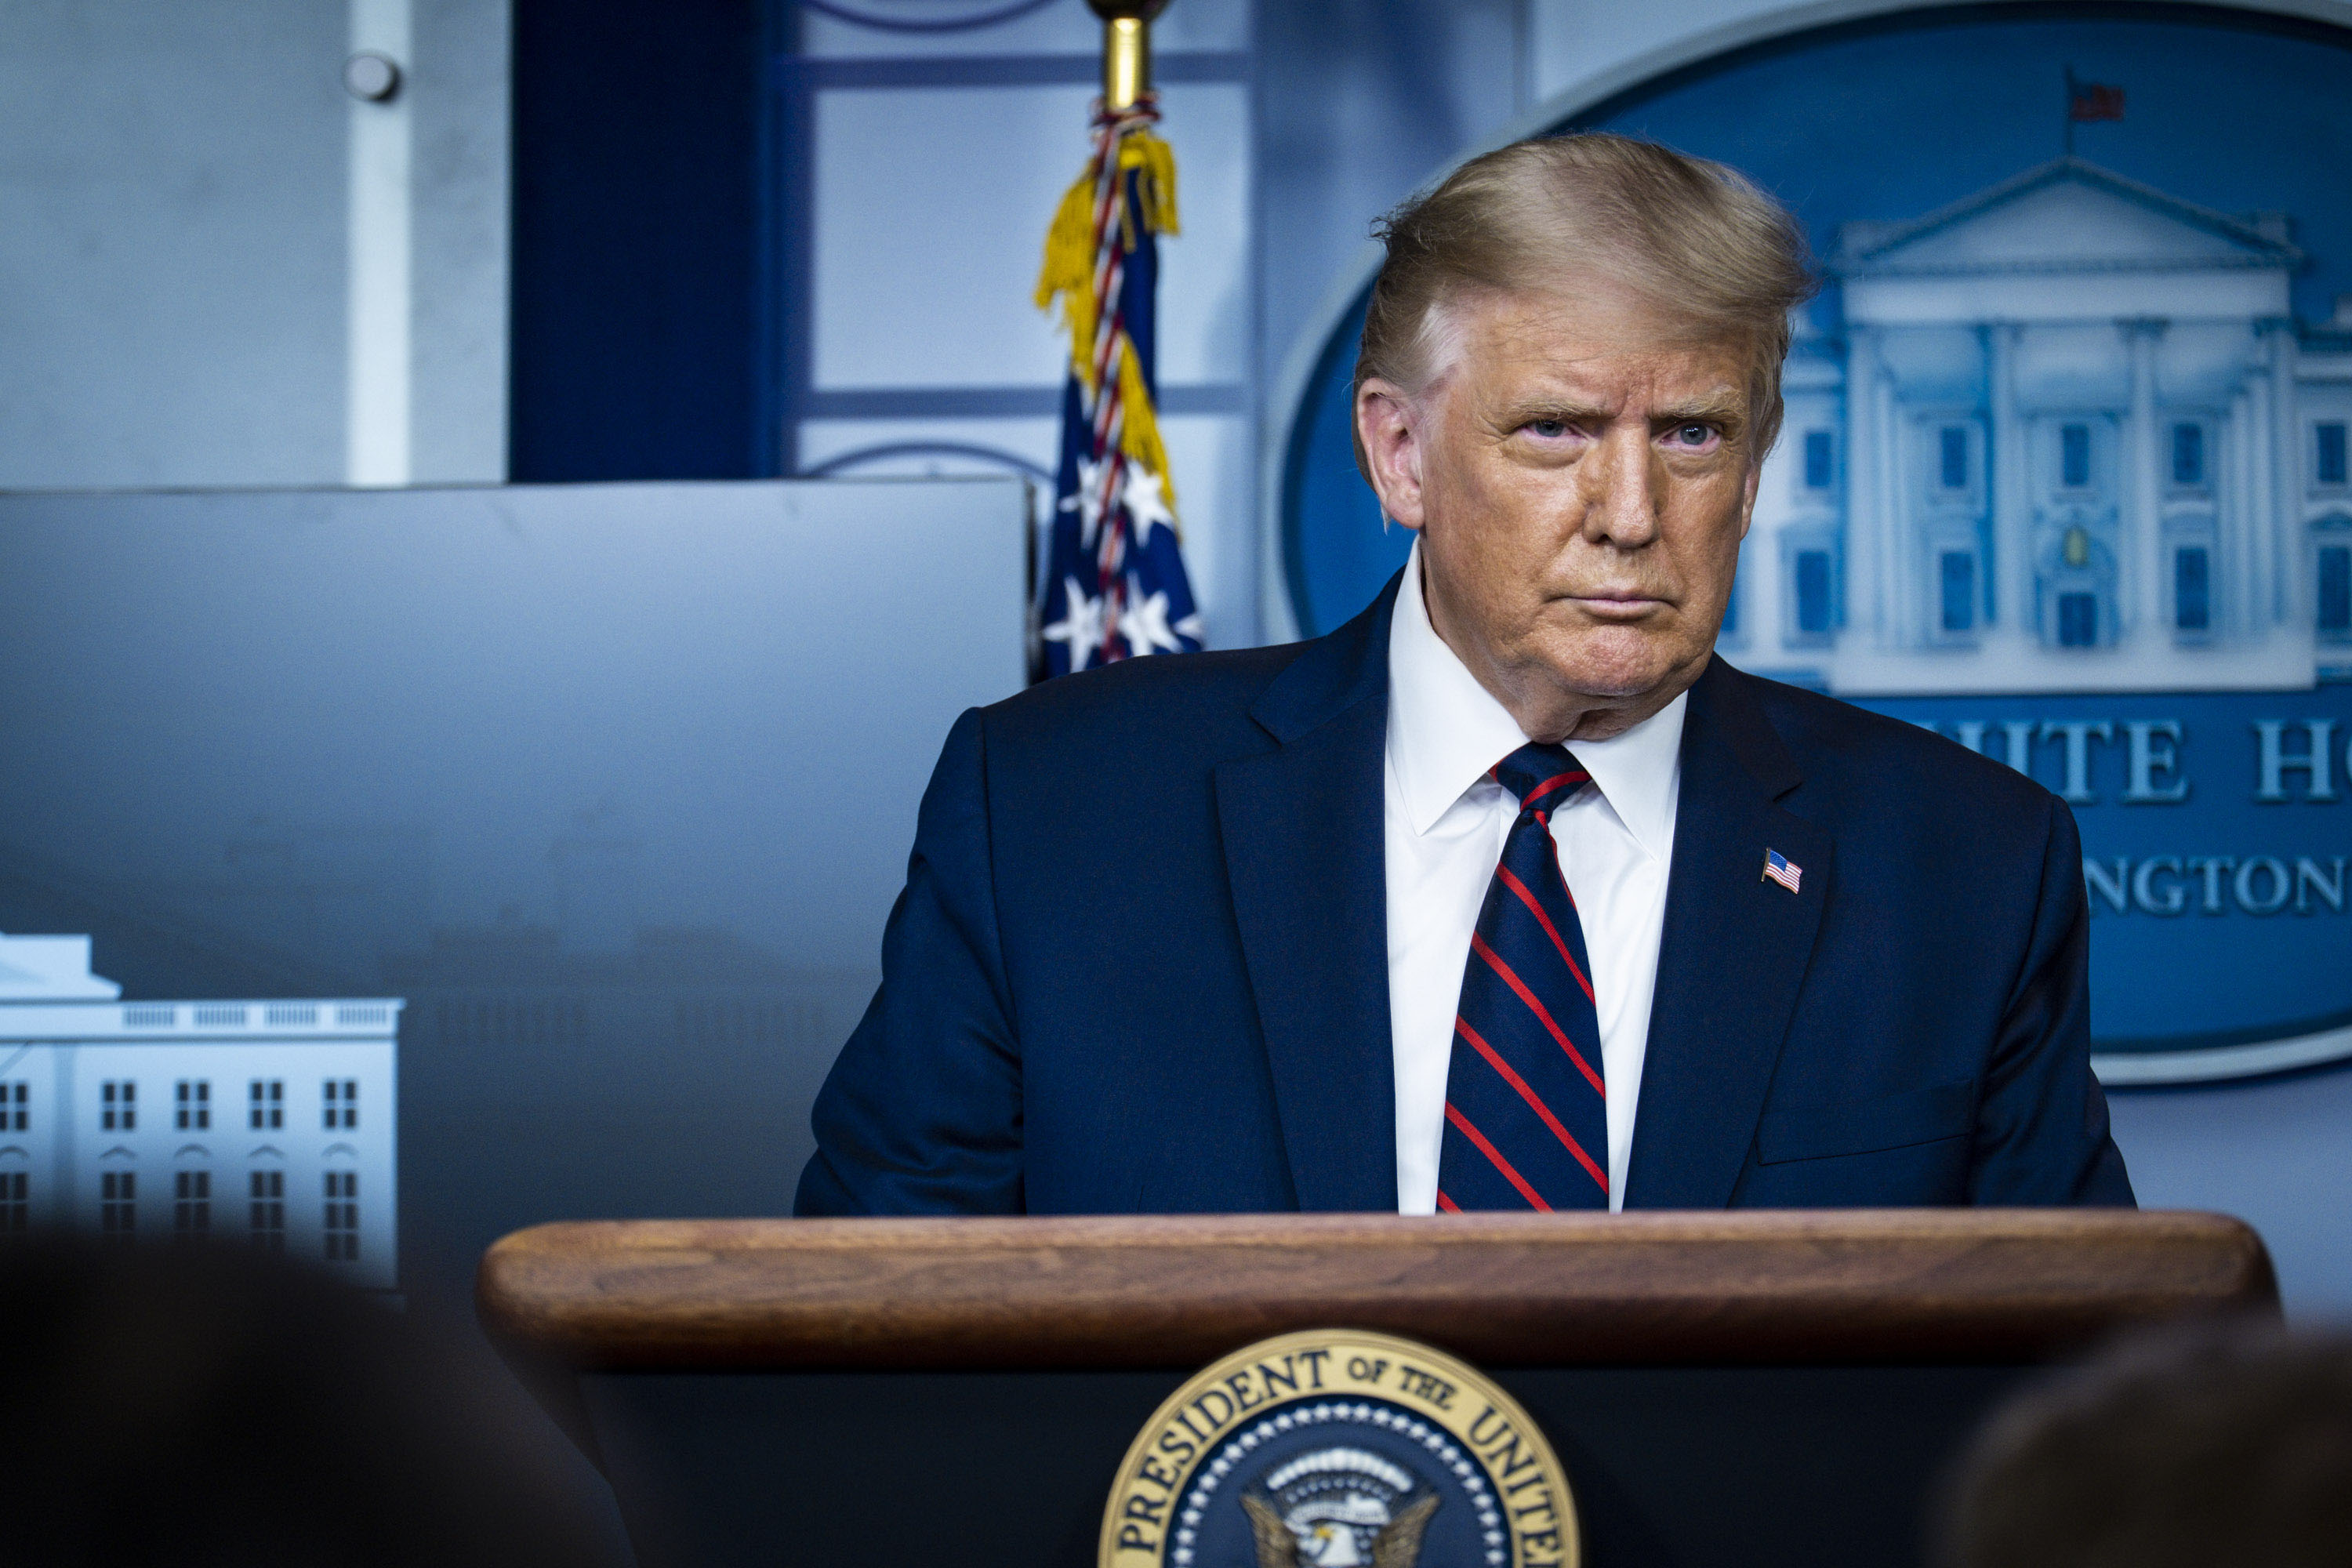 President Donald Trump holds a press conference at the White House on August 23, to announce that the Food and Drug Administration is issuing an emergency authorization for blood plasma as a potential treatment for Covid-19.